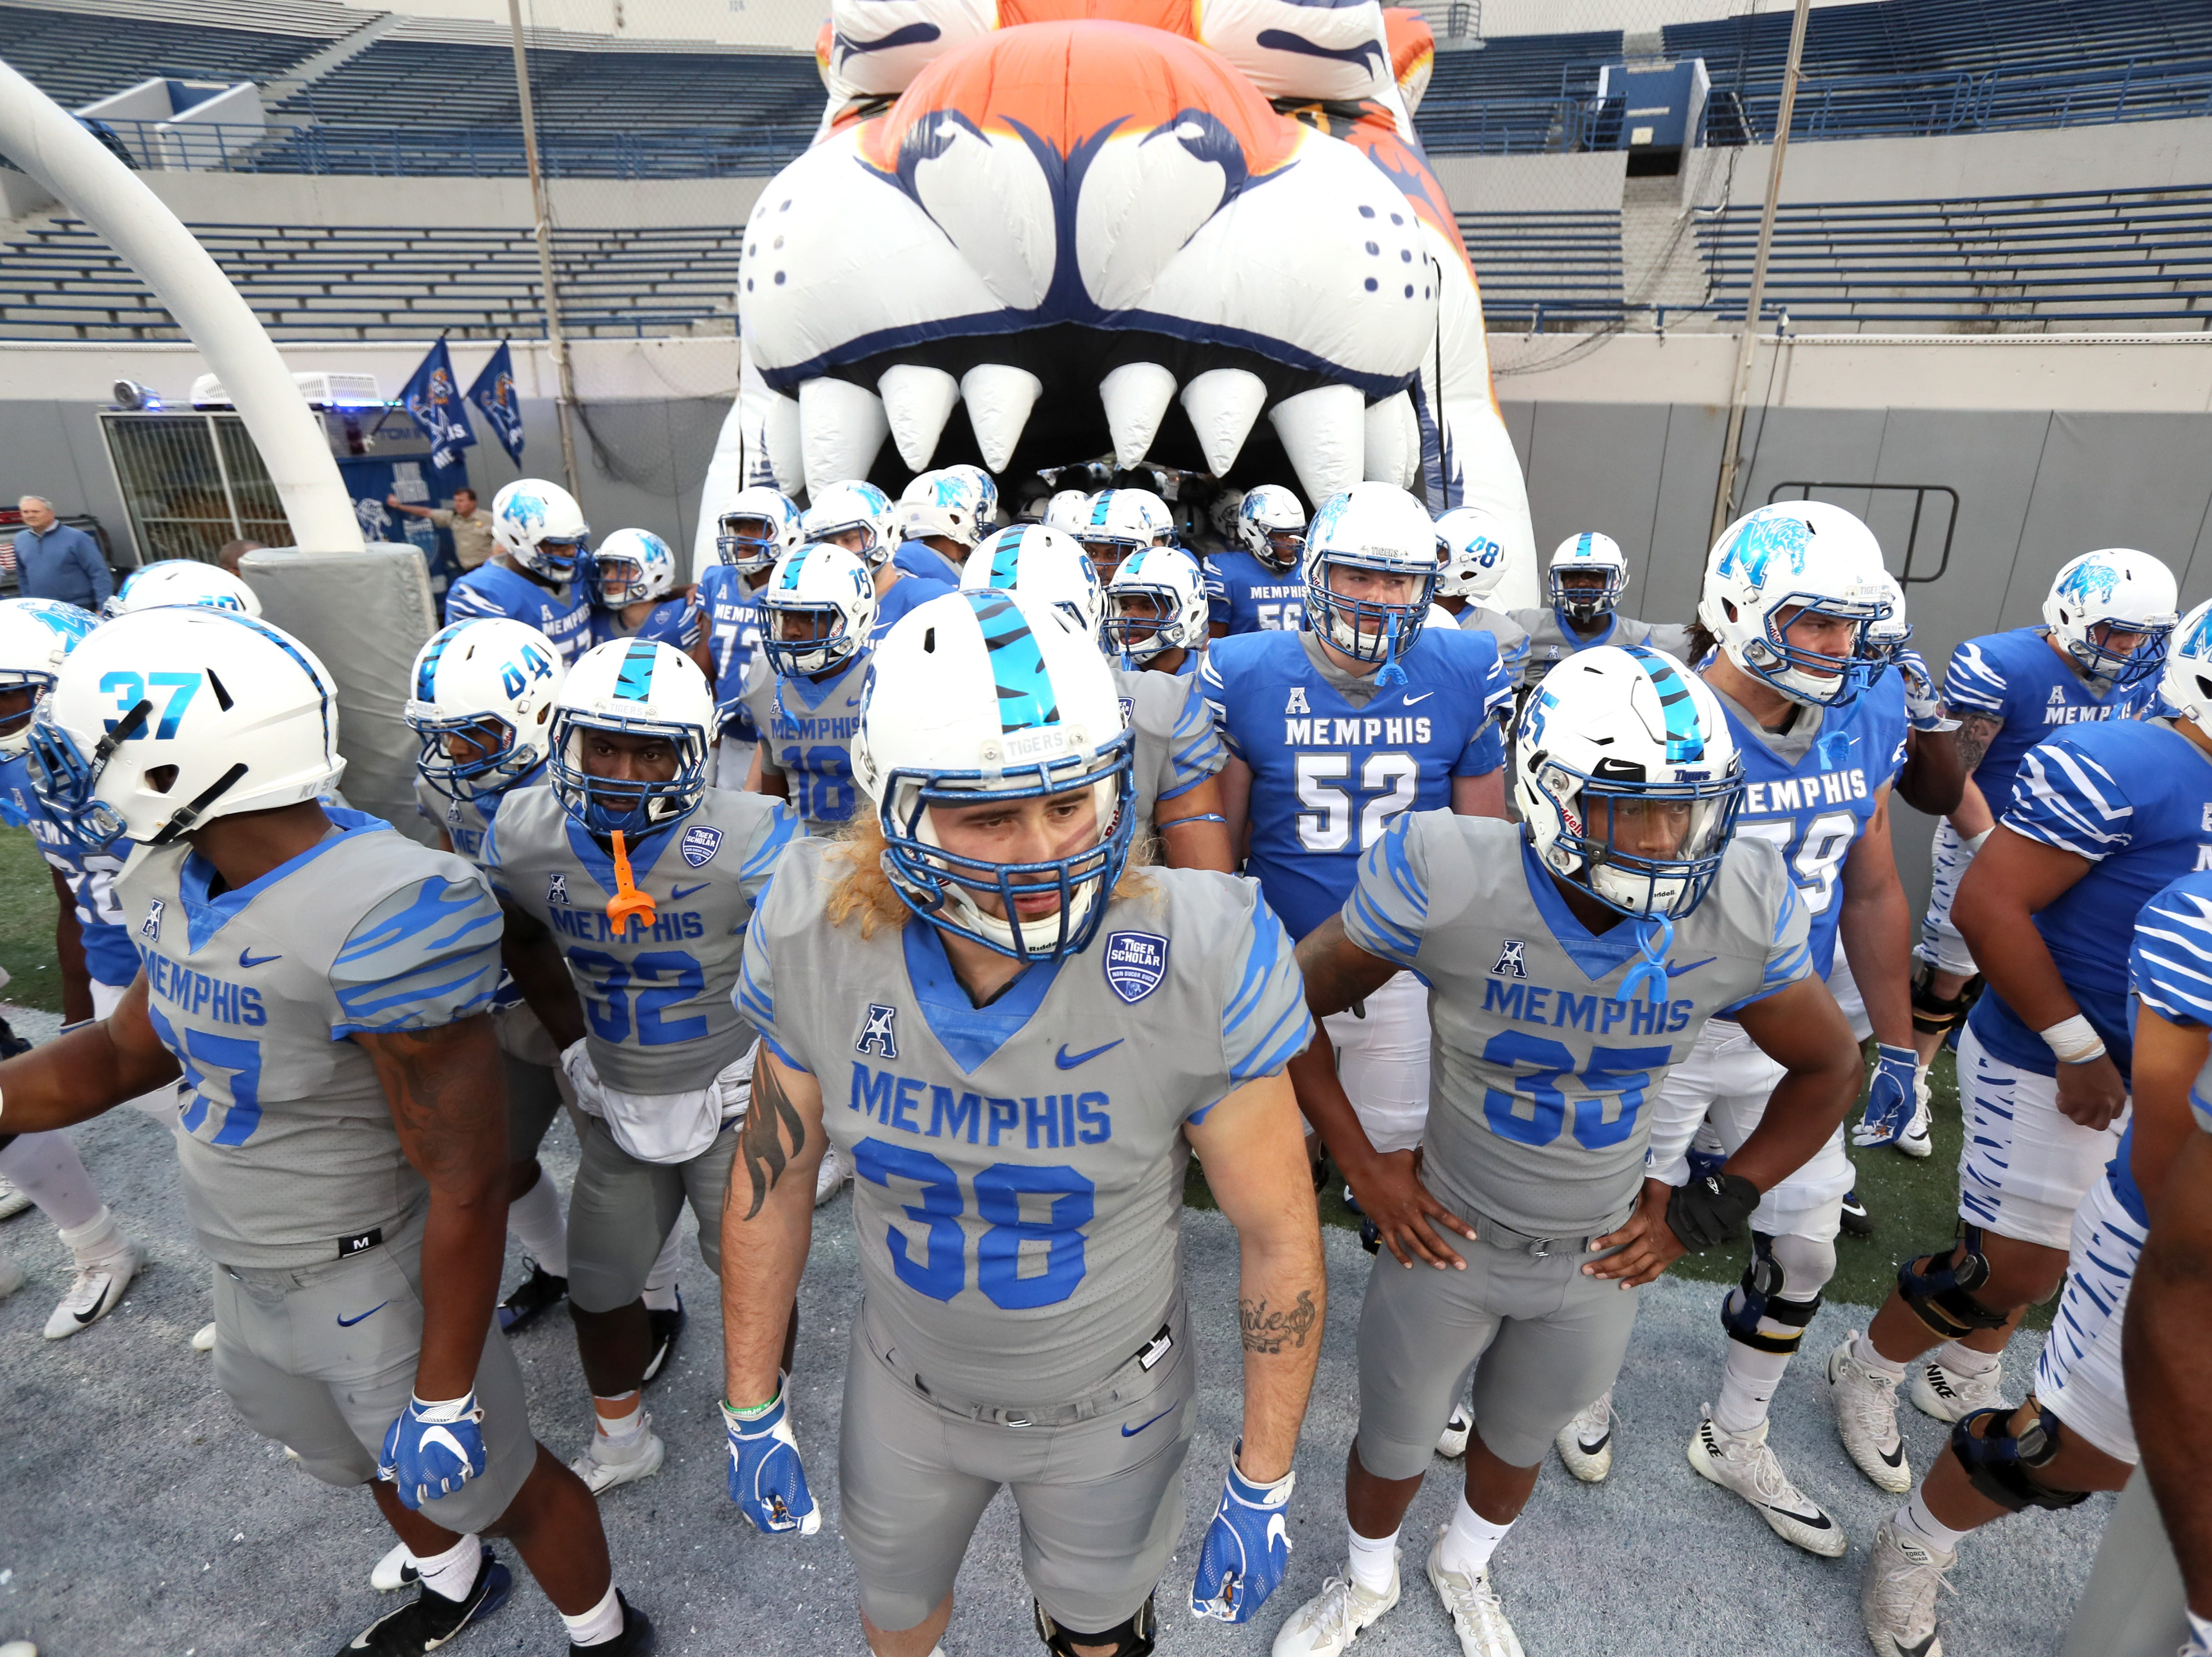 Memphis Tigers players wait to charge out on to the field during their Friday Night Stripes spring game at Liberty Bowl Memorial Stadium on Friday, April 12, 2019.